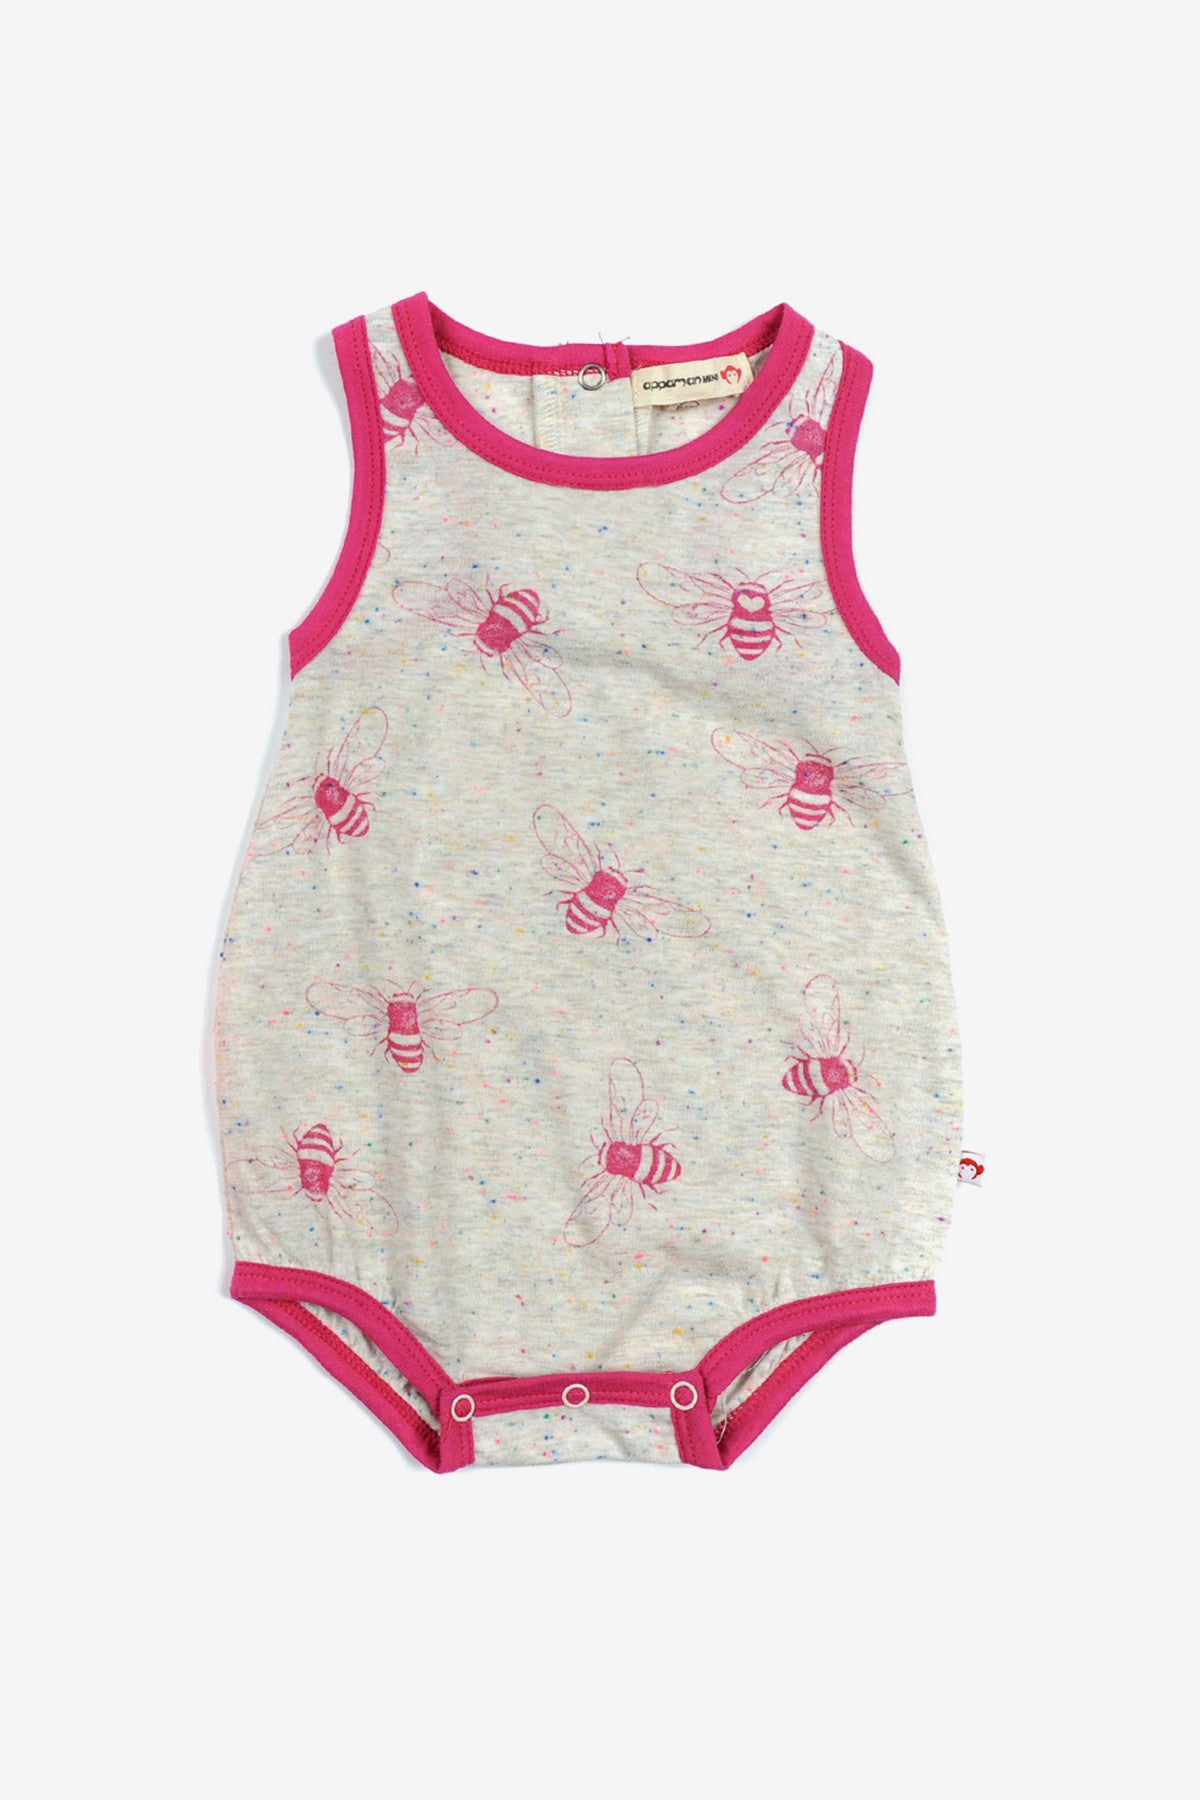 9579fd908e74 Baby Girl - Rompers and Playsuits Page 3 - Mini Ruby